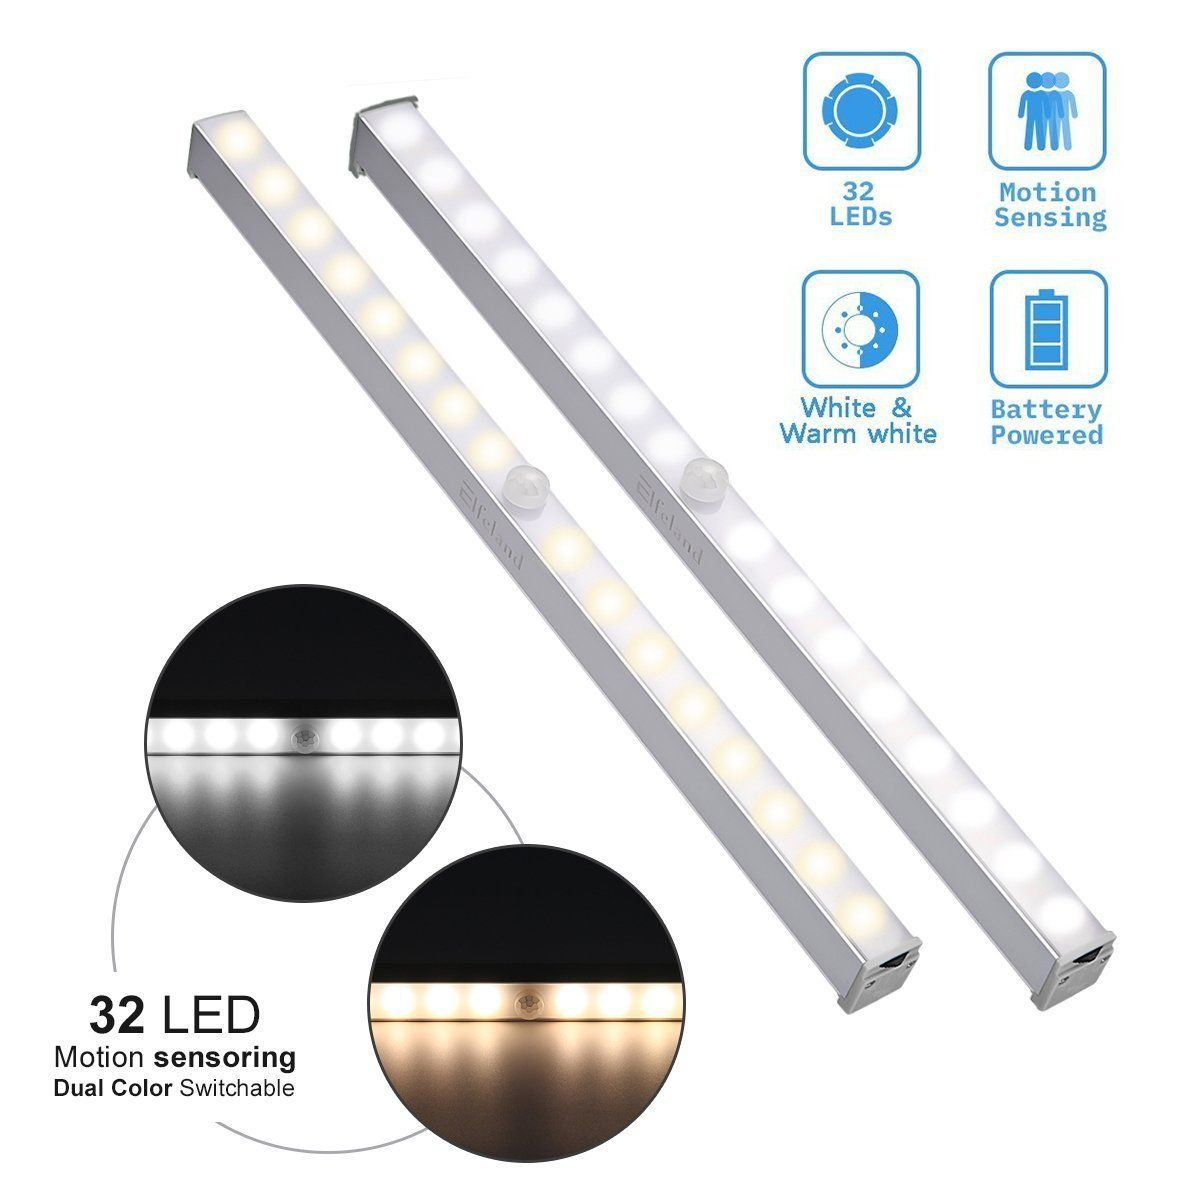 Closet light elfeland motion sensor led night light bar wireless